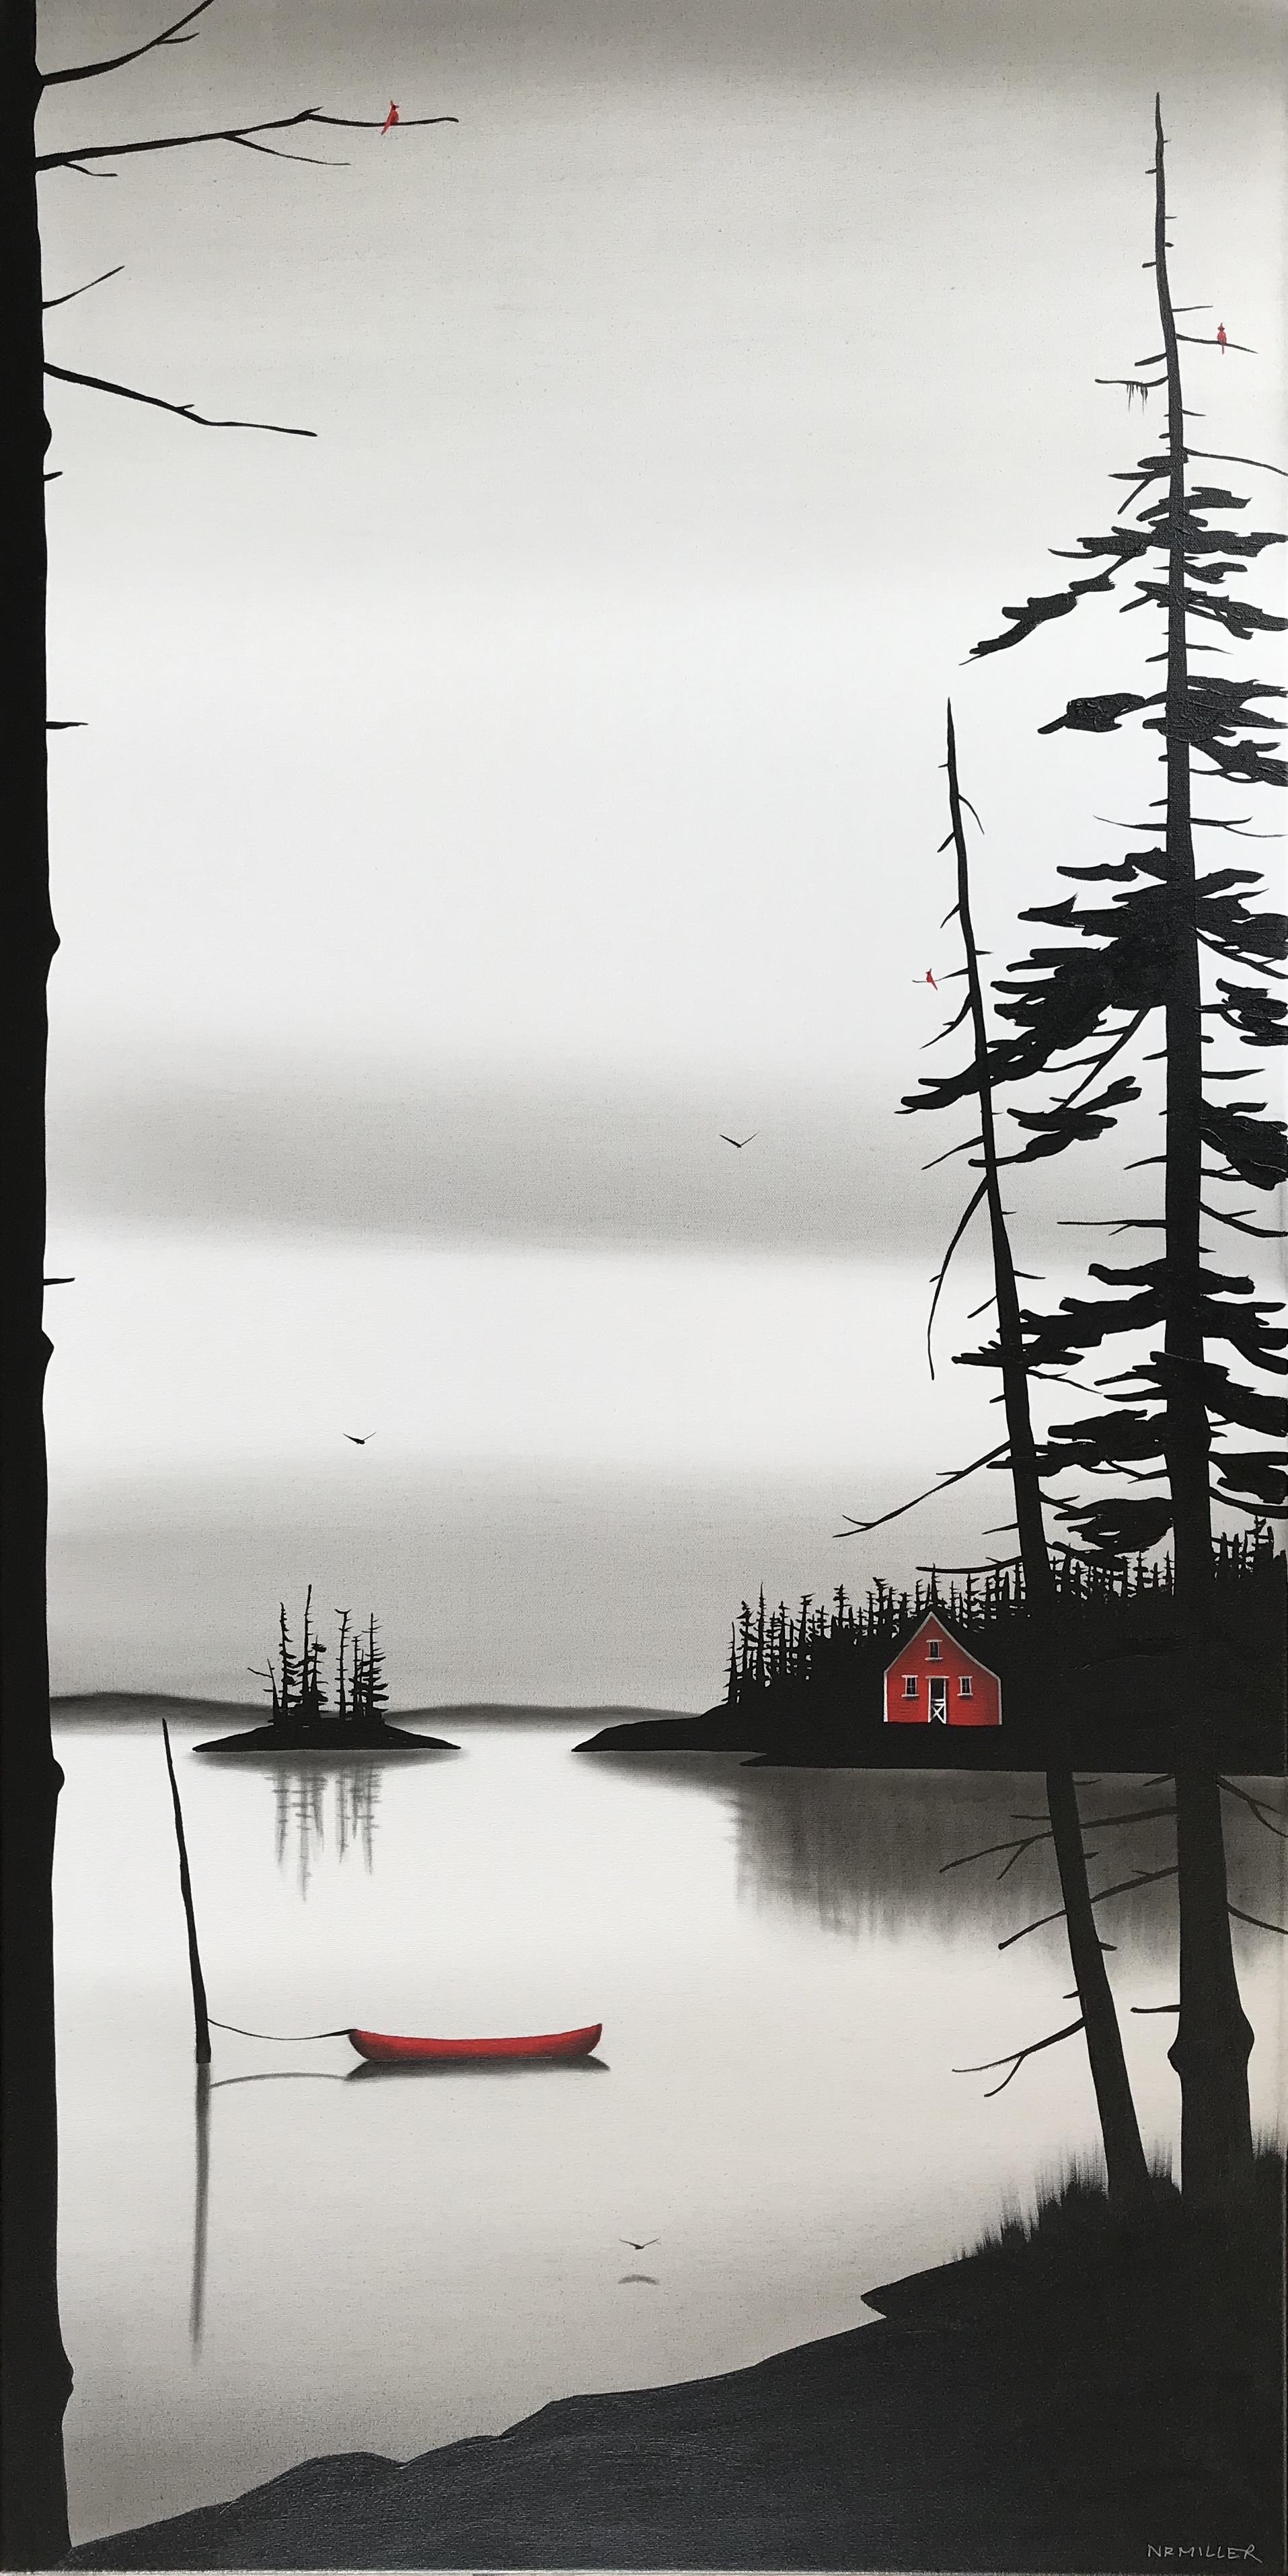 Slowly Passing Time, mixed media landscape painting by Natasha Miller | Effusion Art Gallery + Cast Glass Studio, Invermere BC